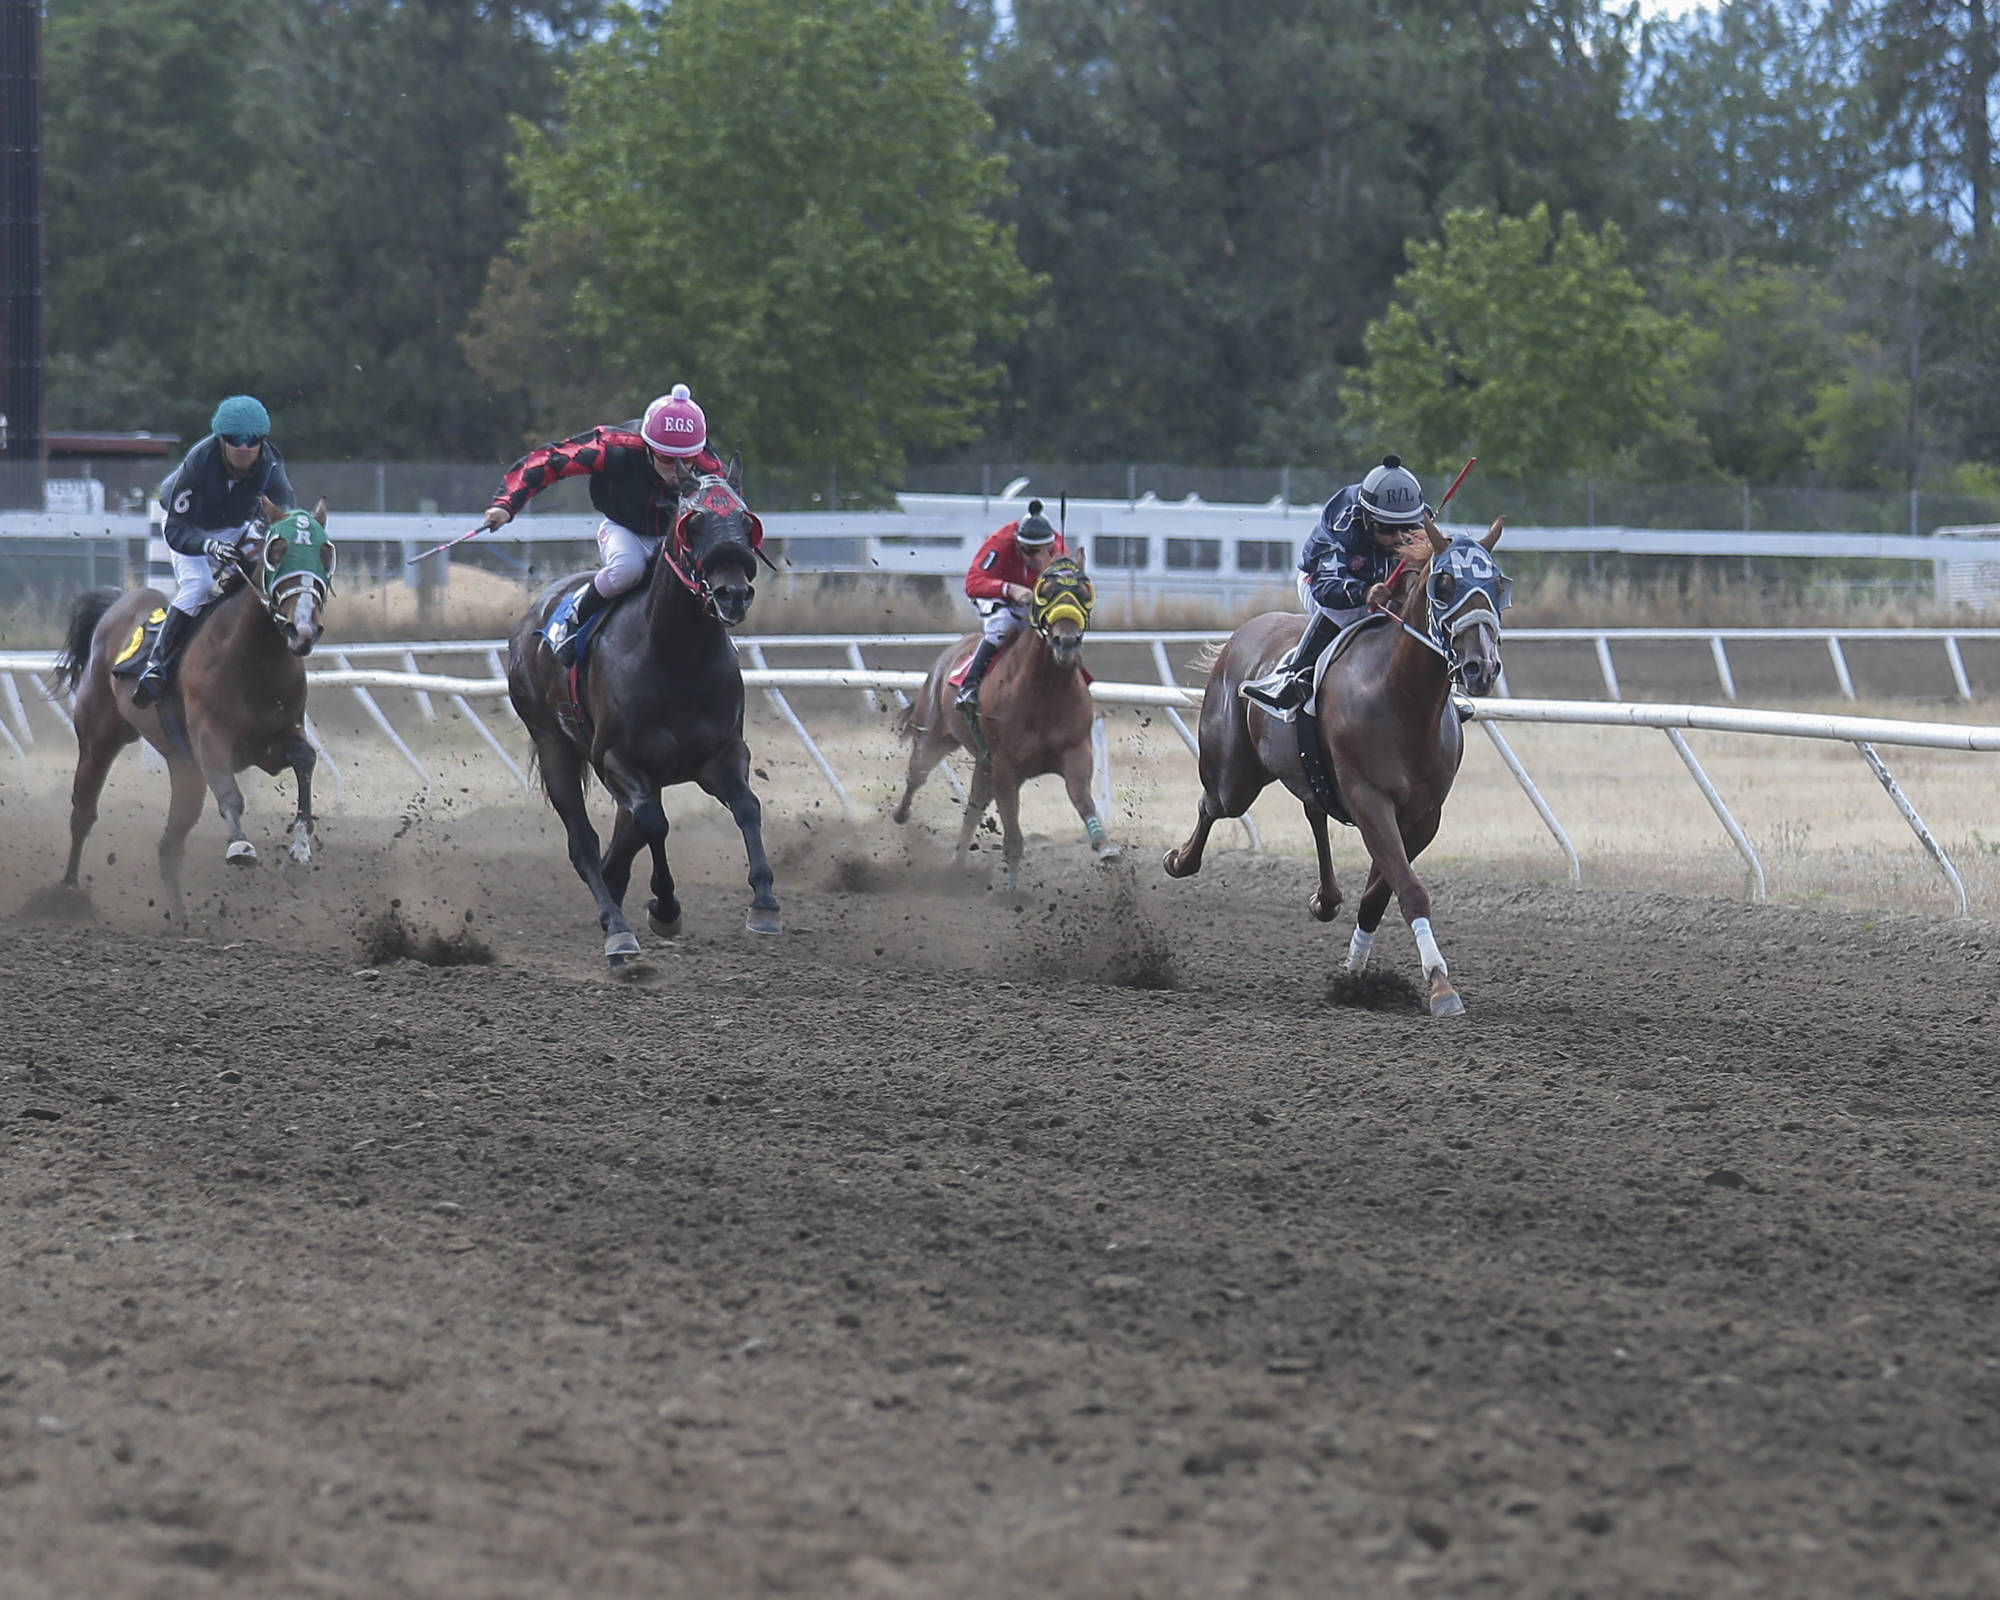 Horse Racing at Grants Pass Downs on Sunday.   [PHOTO BY:  LARRY STAUTH JR]